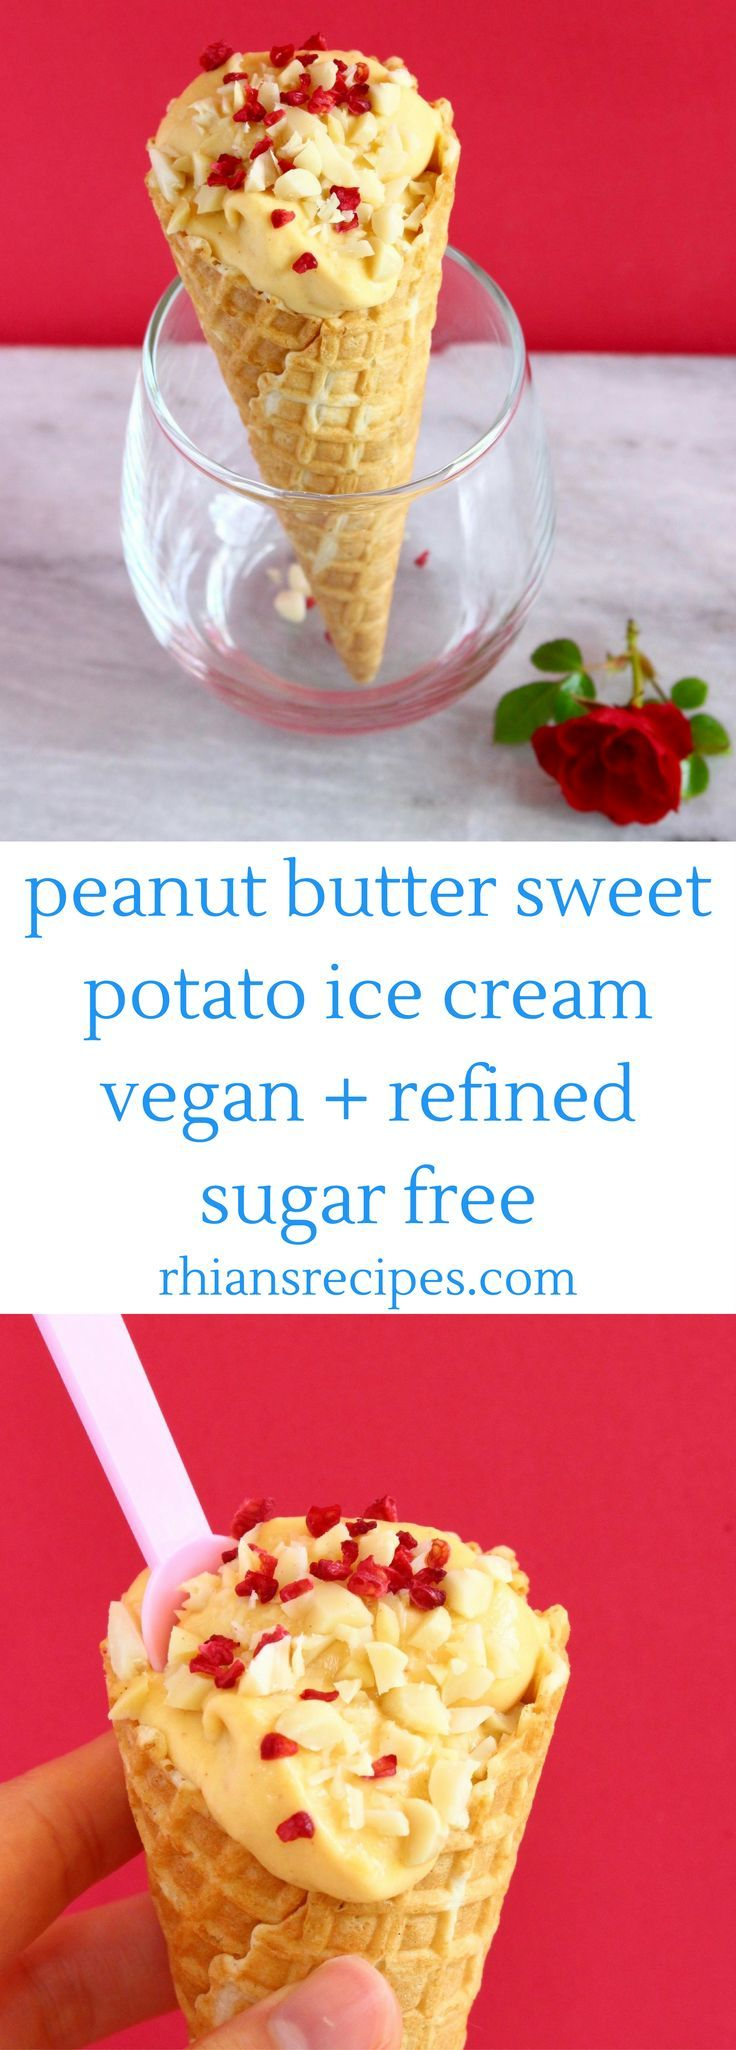 This No-Churn Vegan Peanut Butter Sweet Potato Ice Cream is easy to make, secretly healthy and requires just 3 ingredients! Also refined sugar free and gluten-free.